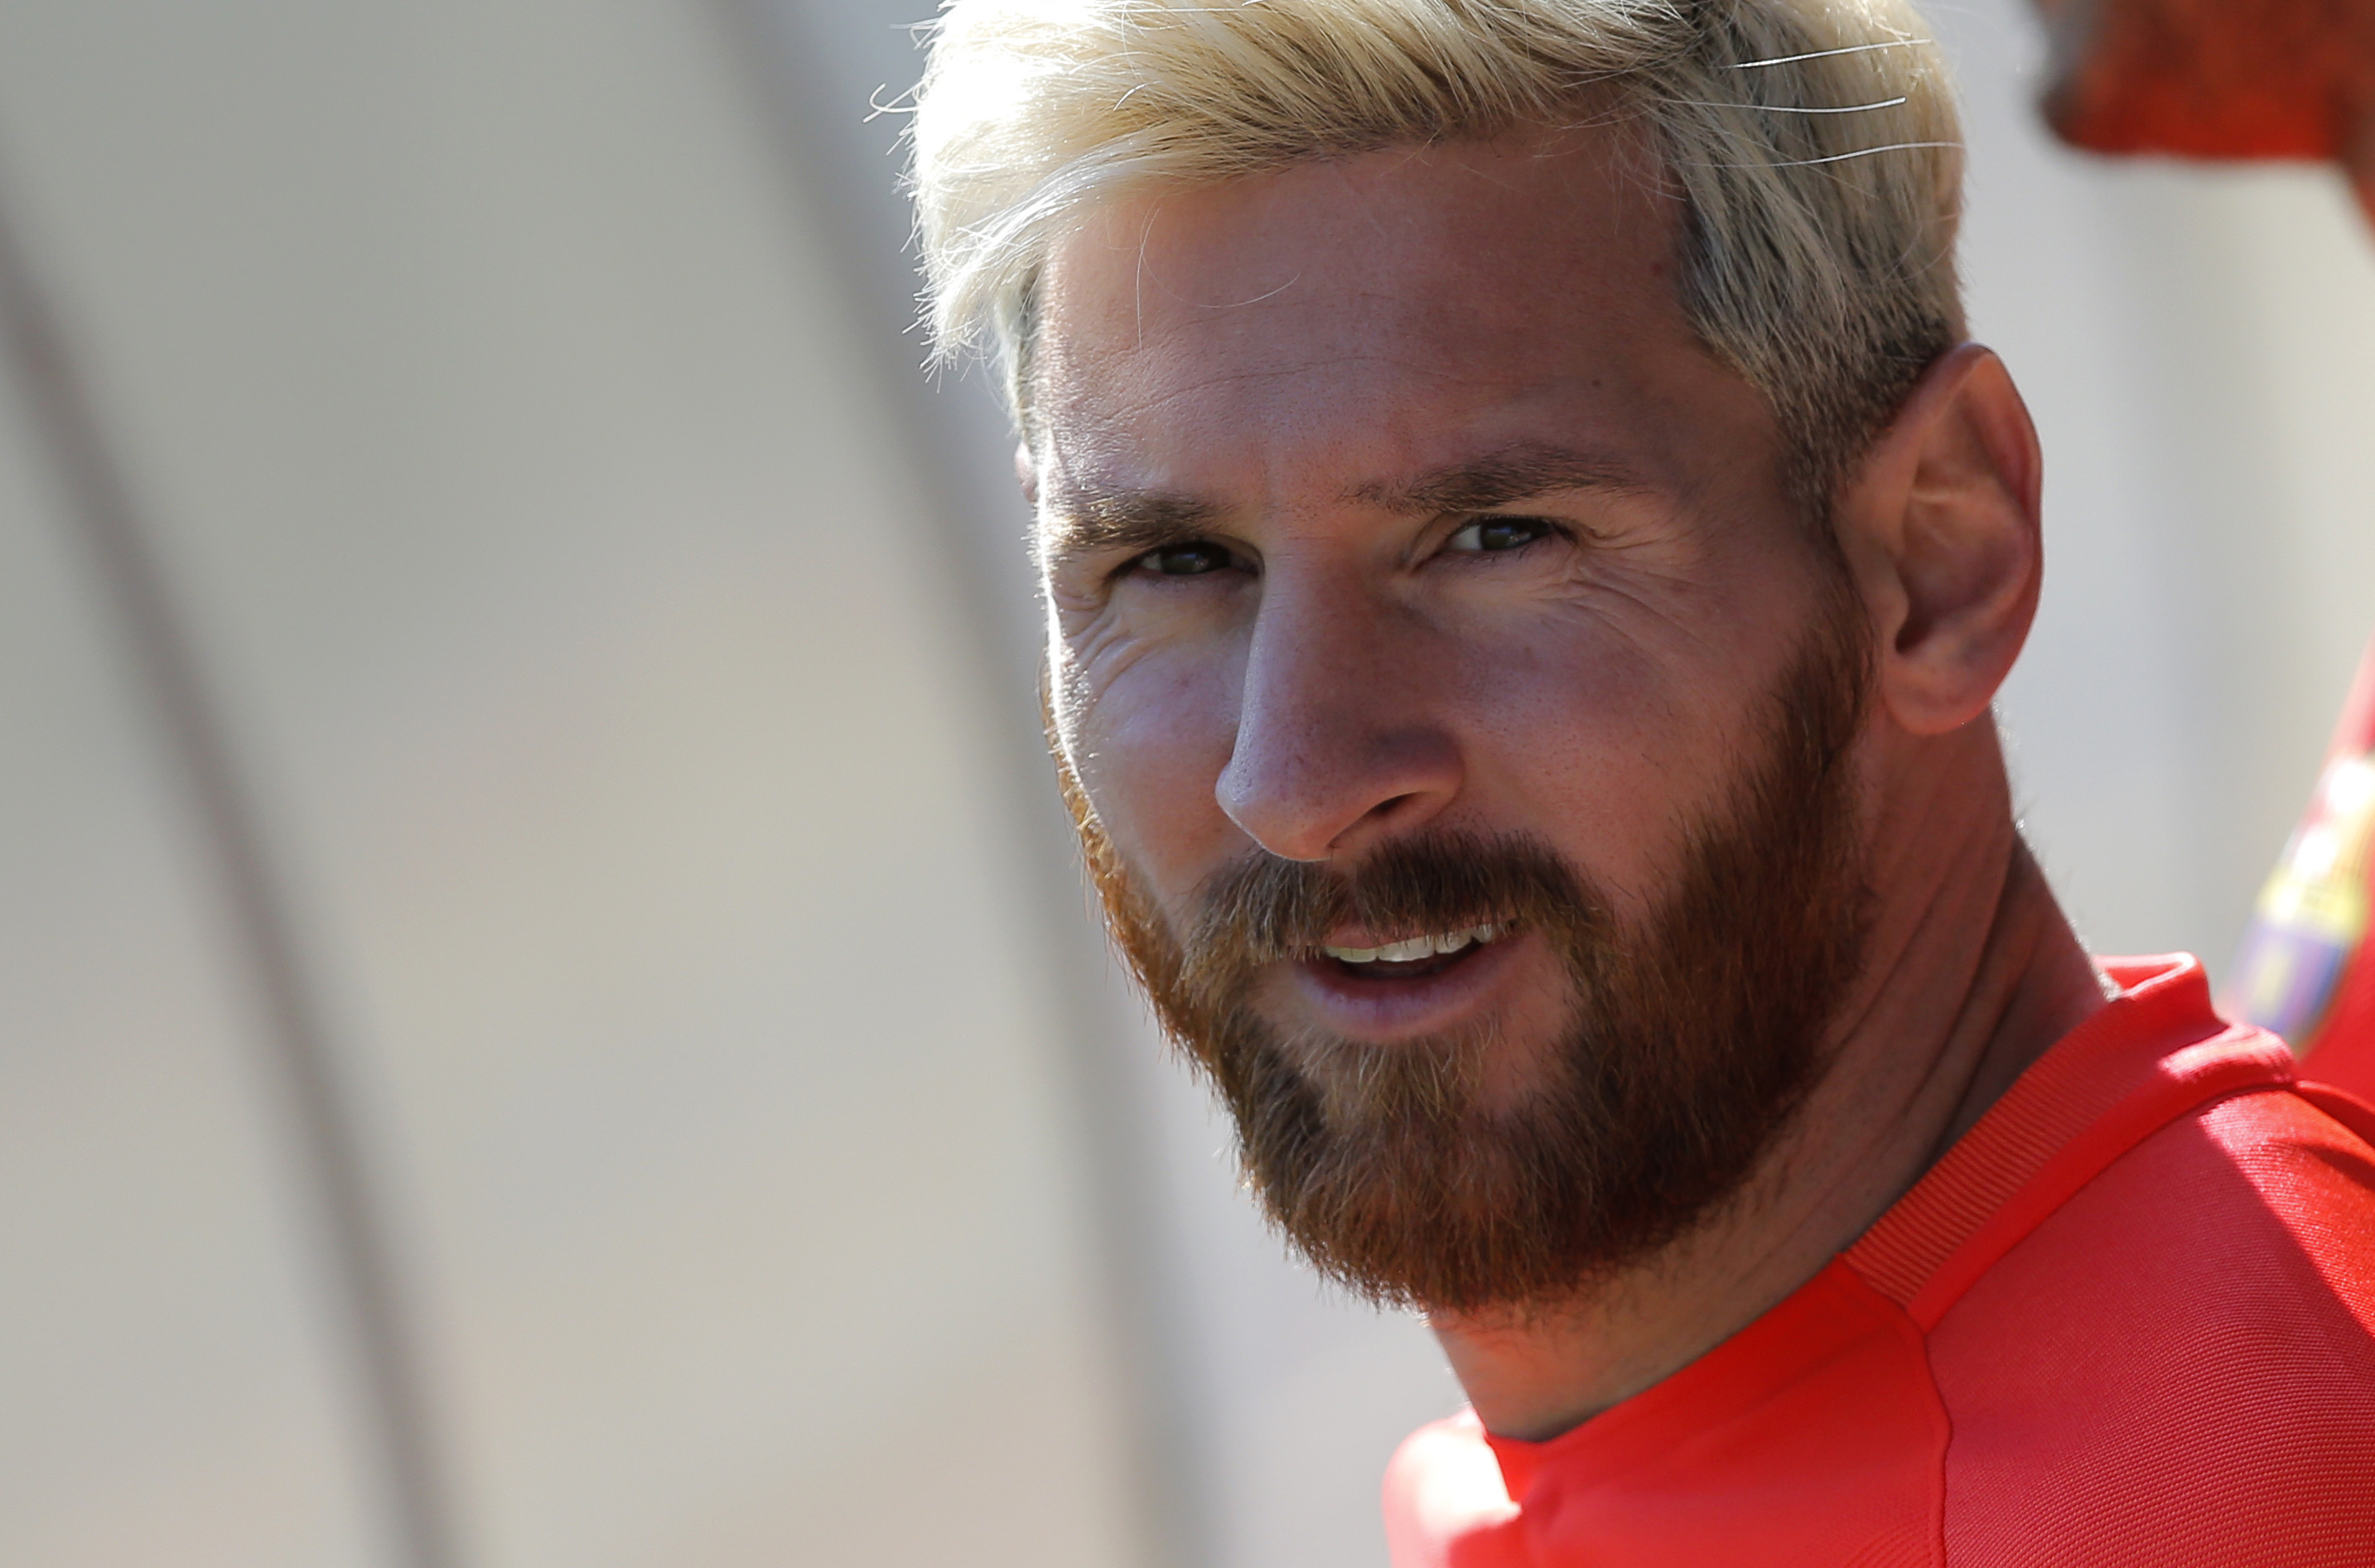 Lionel Messi Explains Why He Decided To Dye His Hair Sportbible